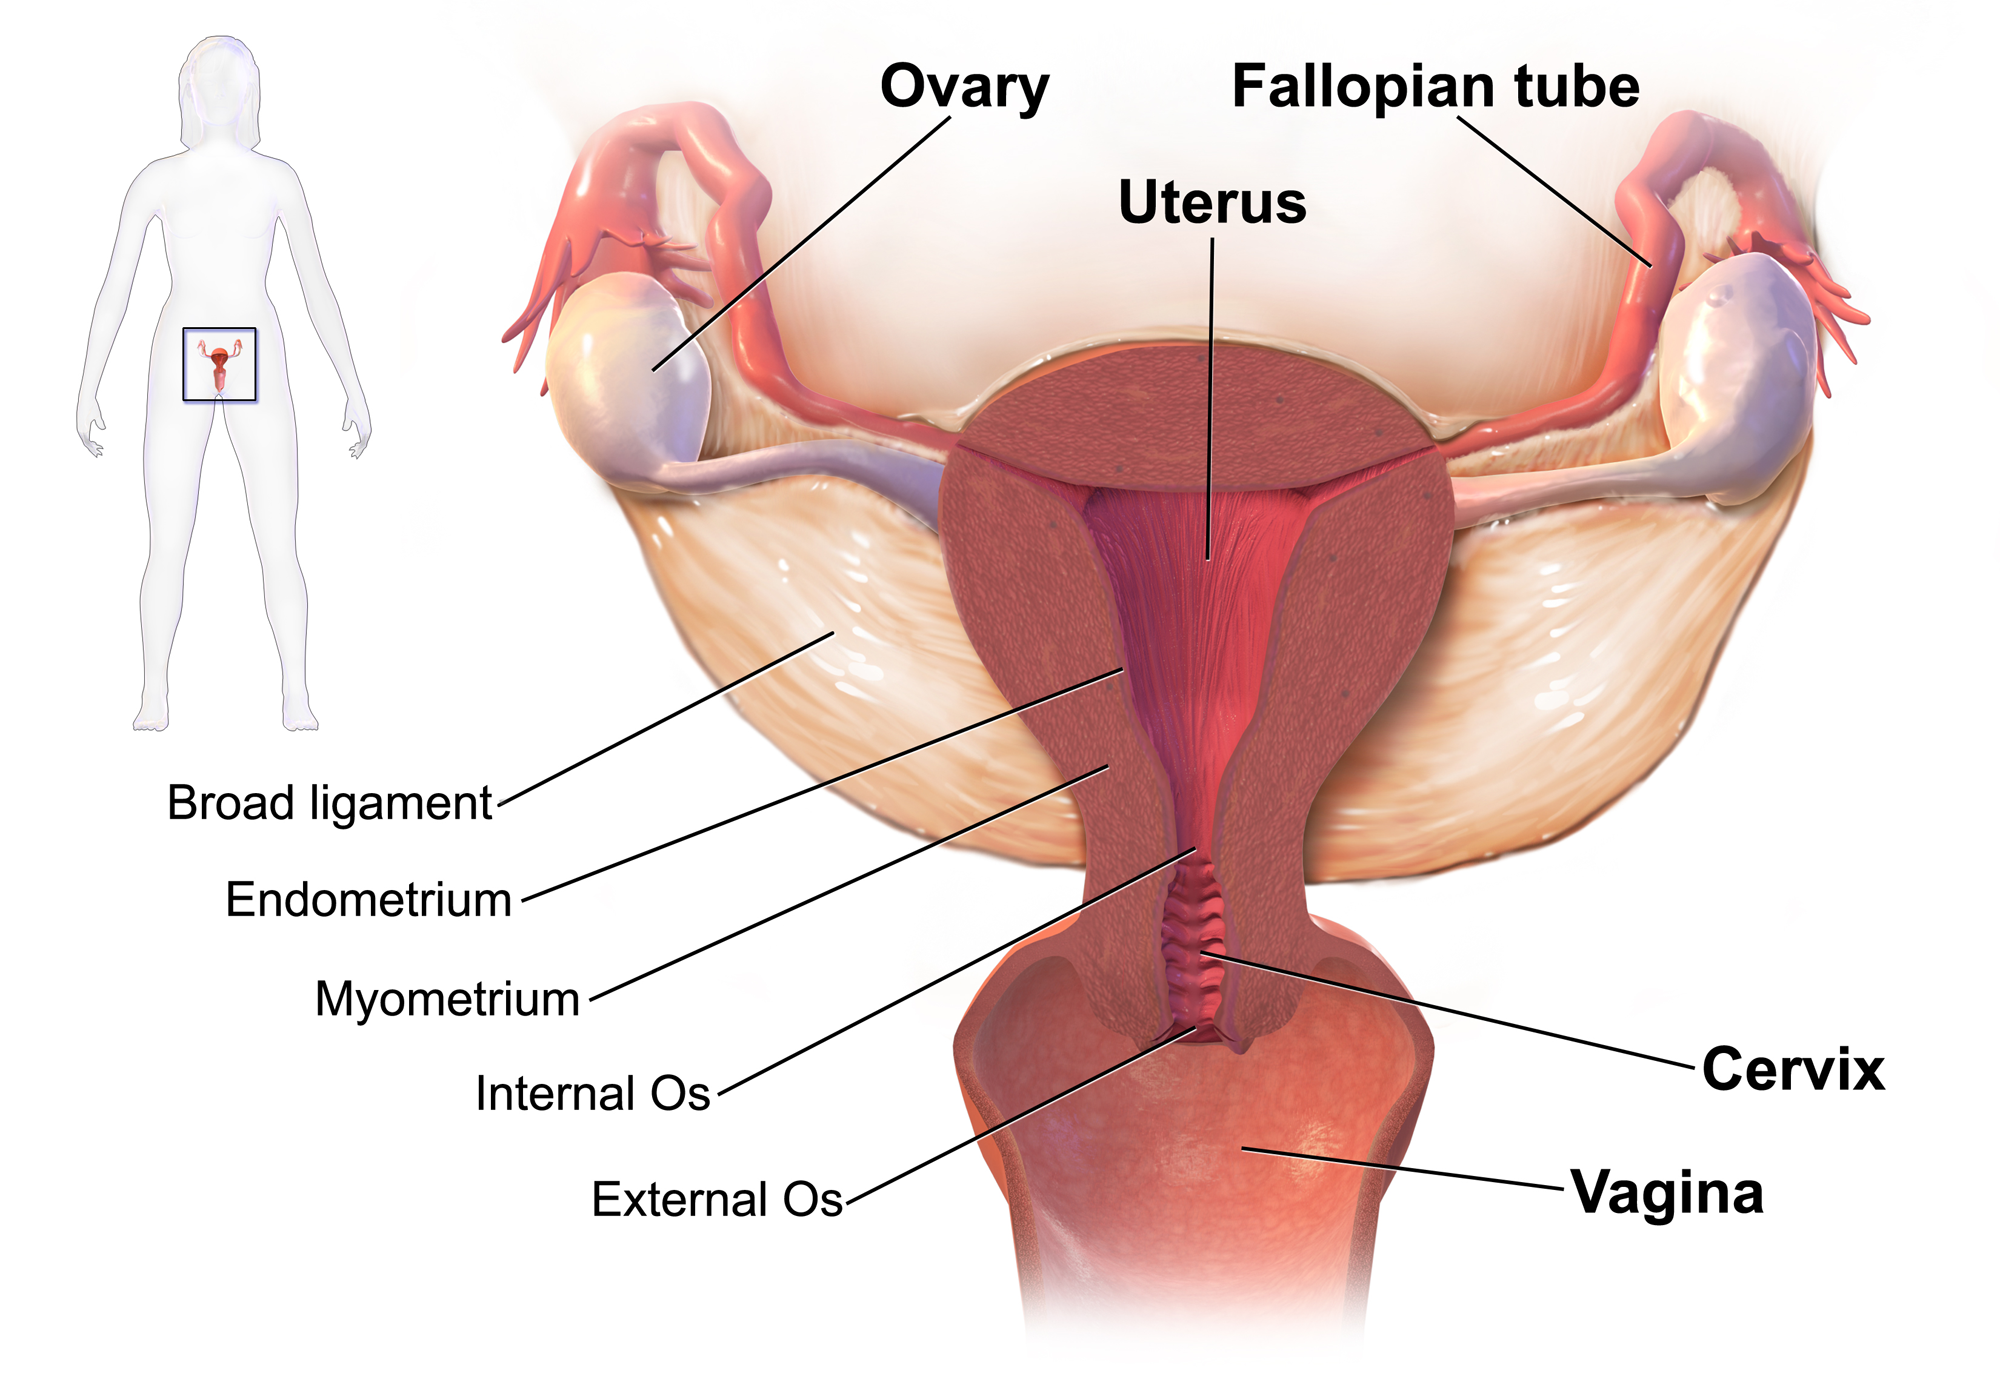 PID can involve any organs of the upper female genital tract (source)